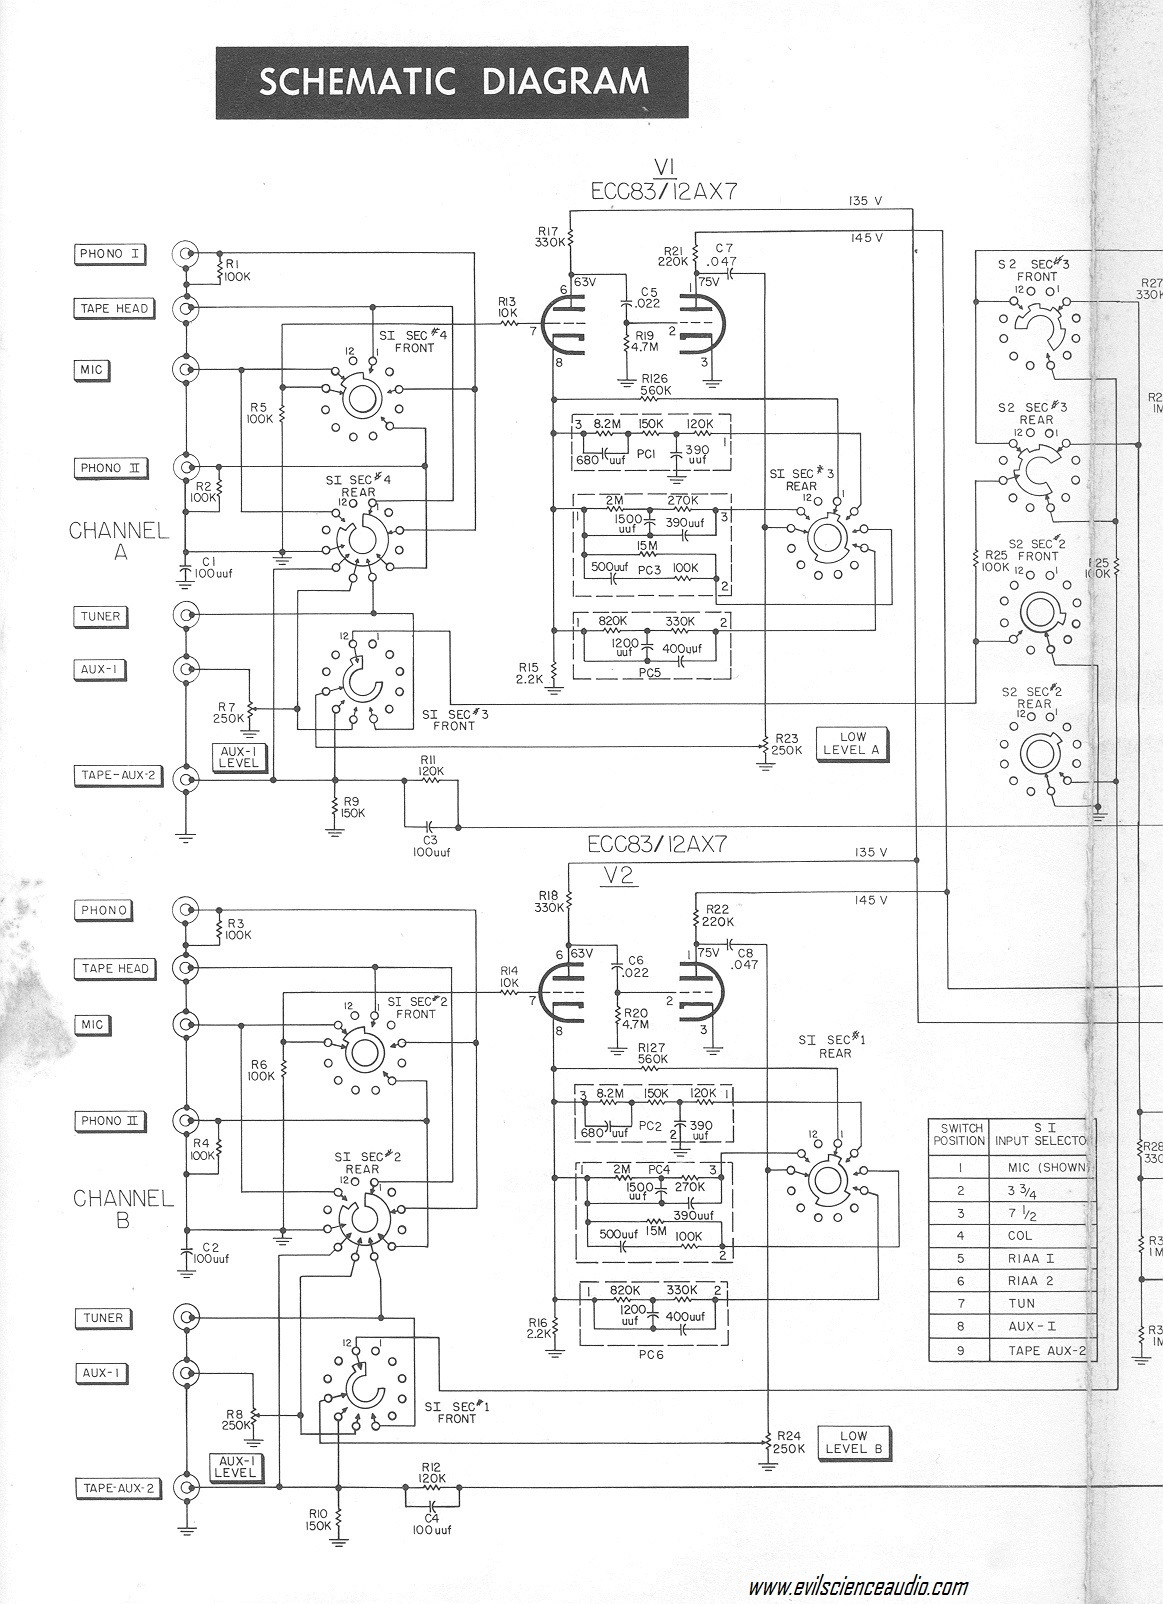 P1 Engineering Schematics Circuit Wiring And Diagram Hub Wow Hi Fi Evil Science Audio Rh Evilscienceaudio Com Mounts Recipe Electrical